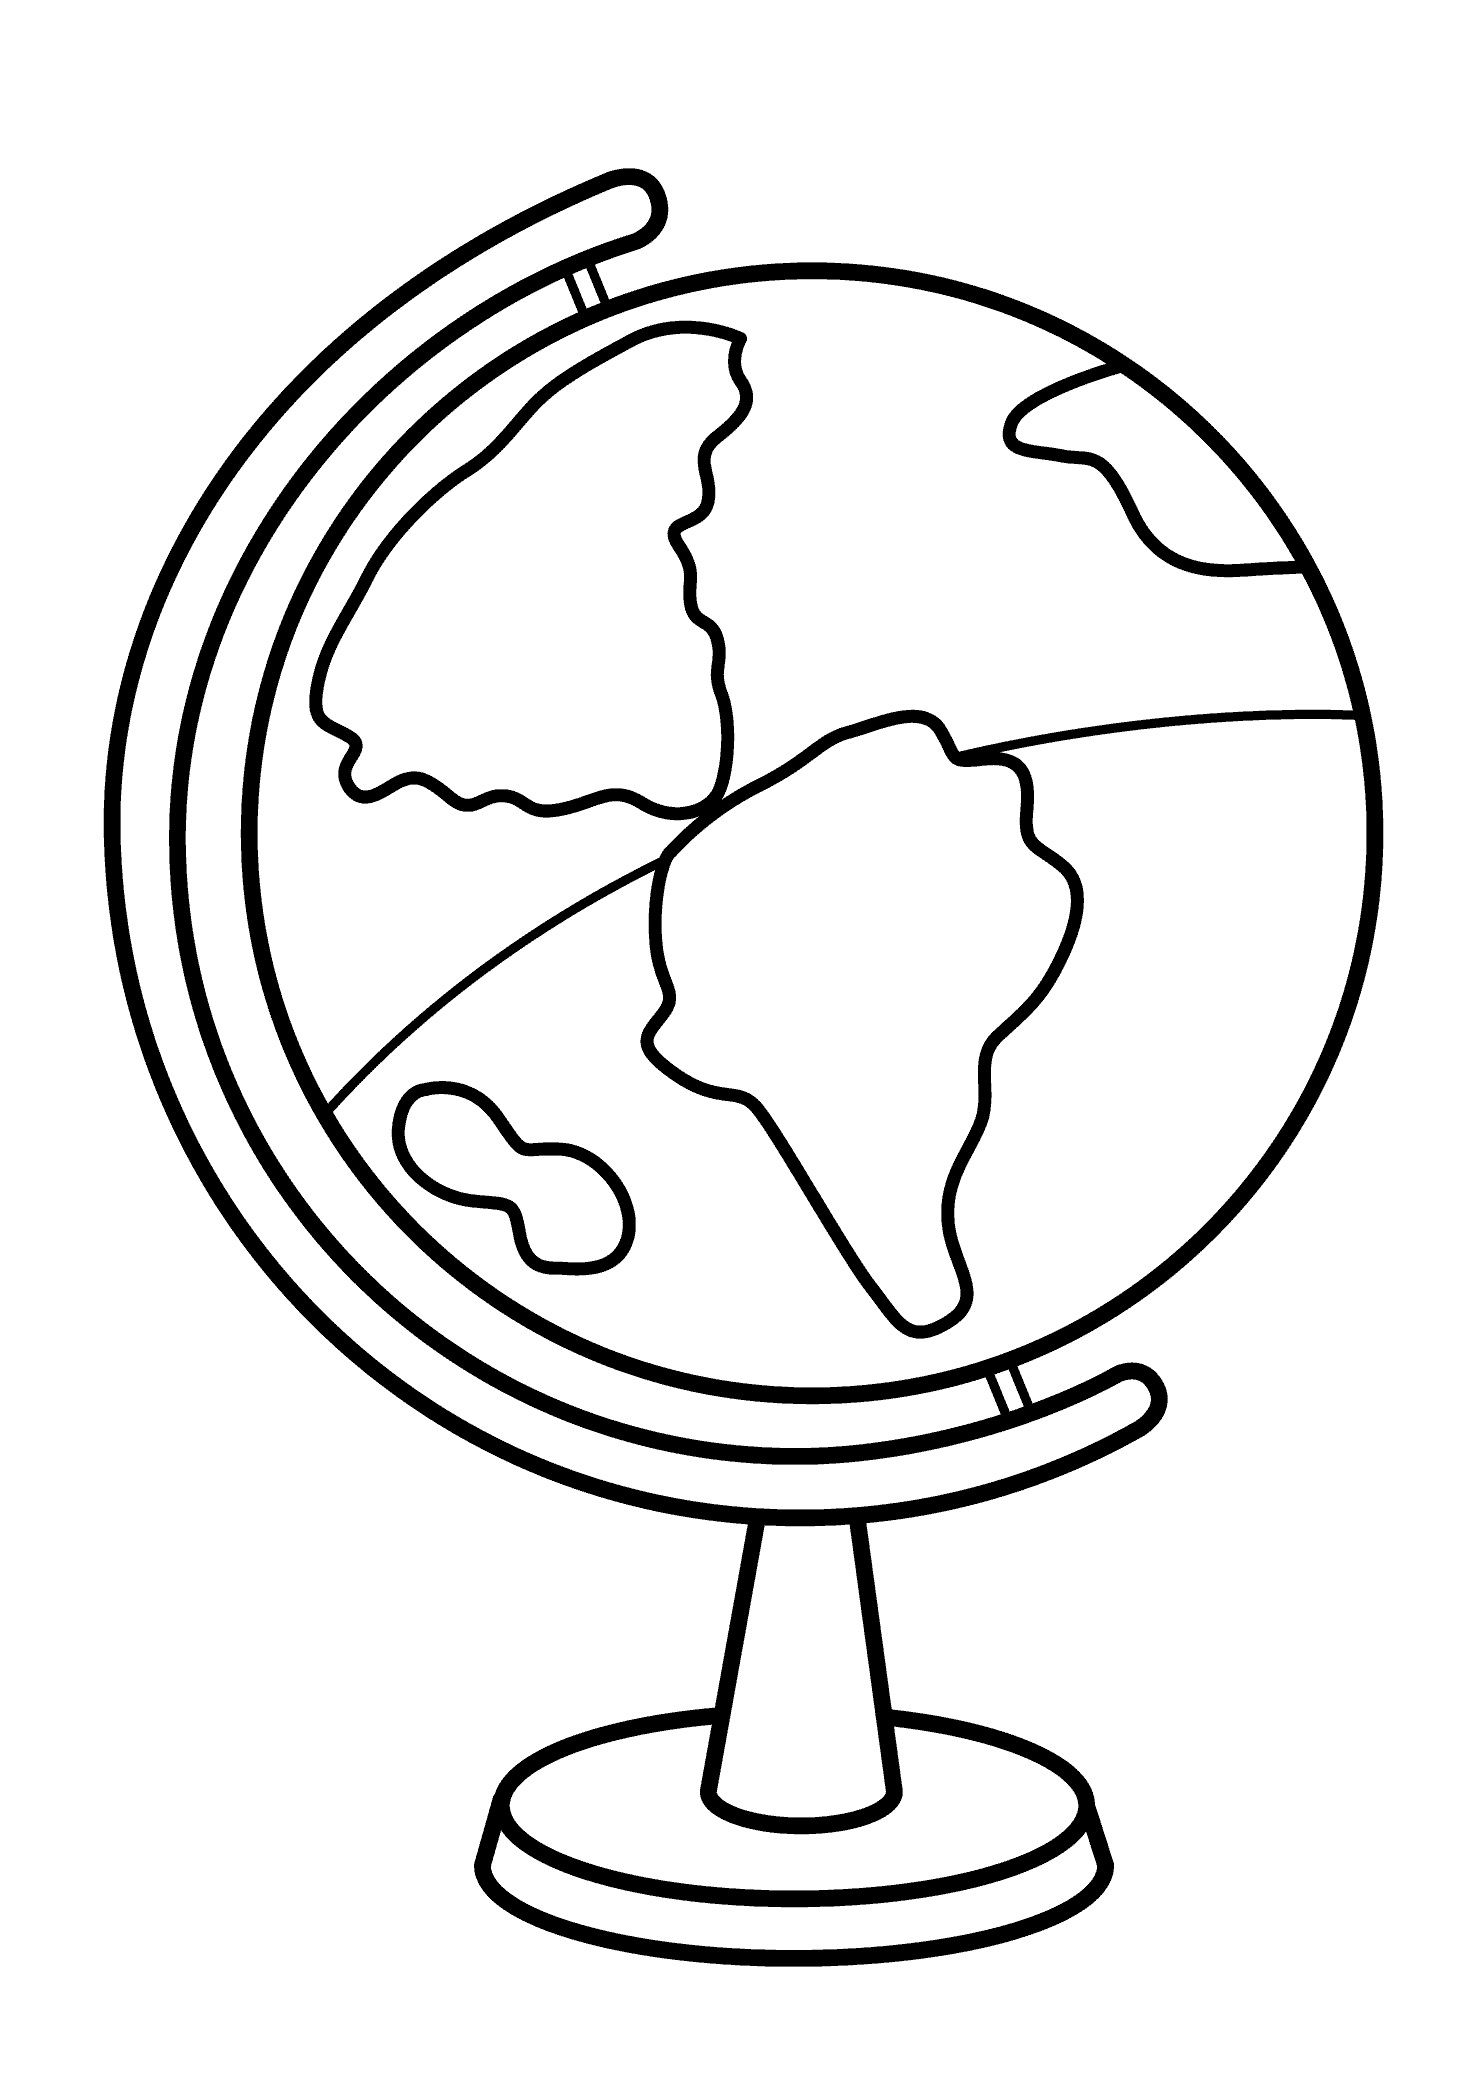 1483x2079 Coloring Pages Globe High Quality Loving Printable